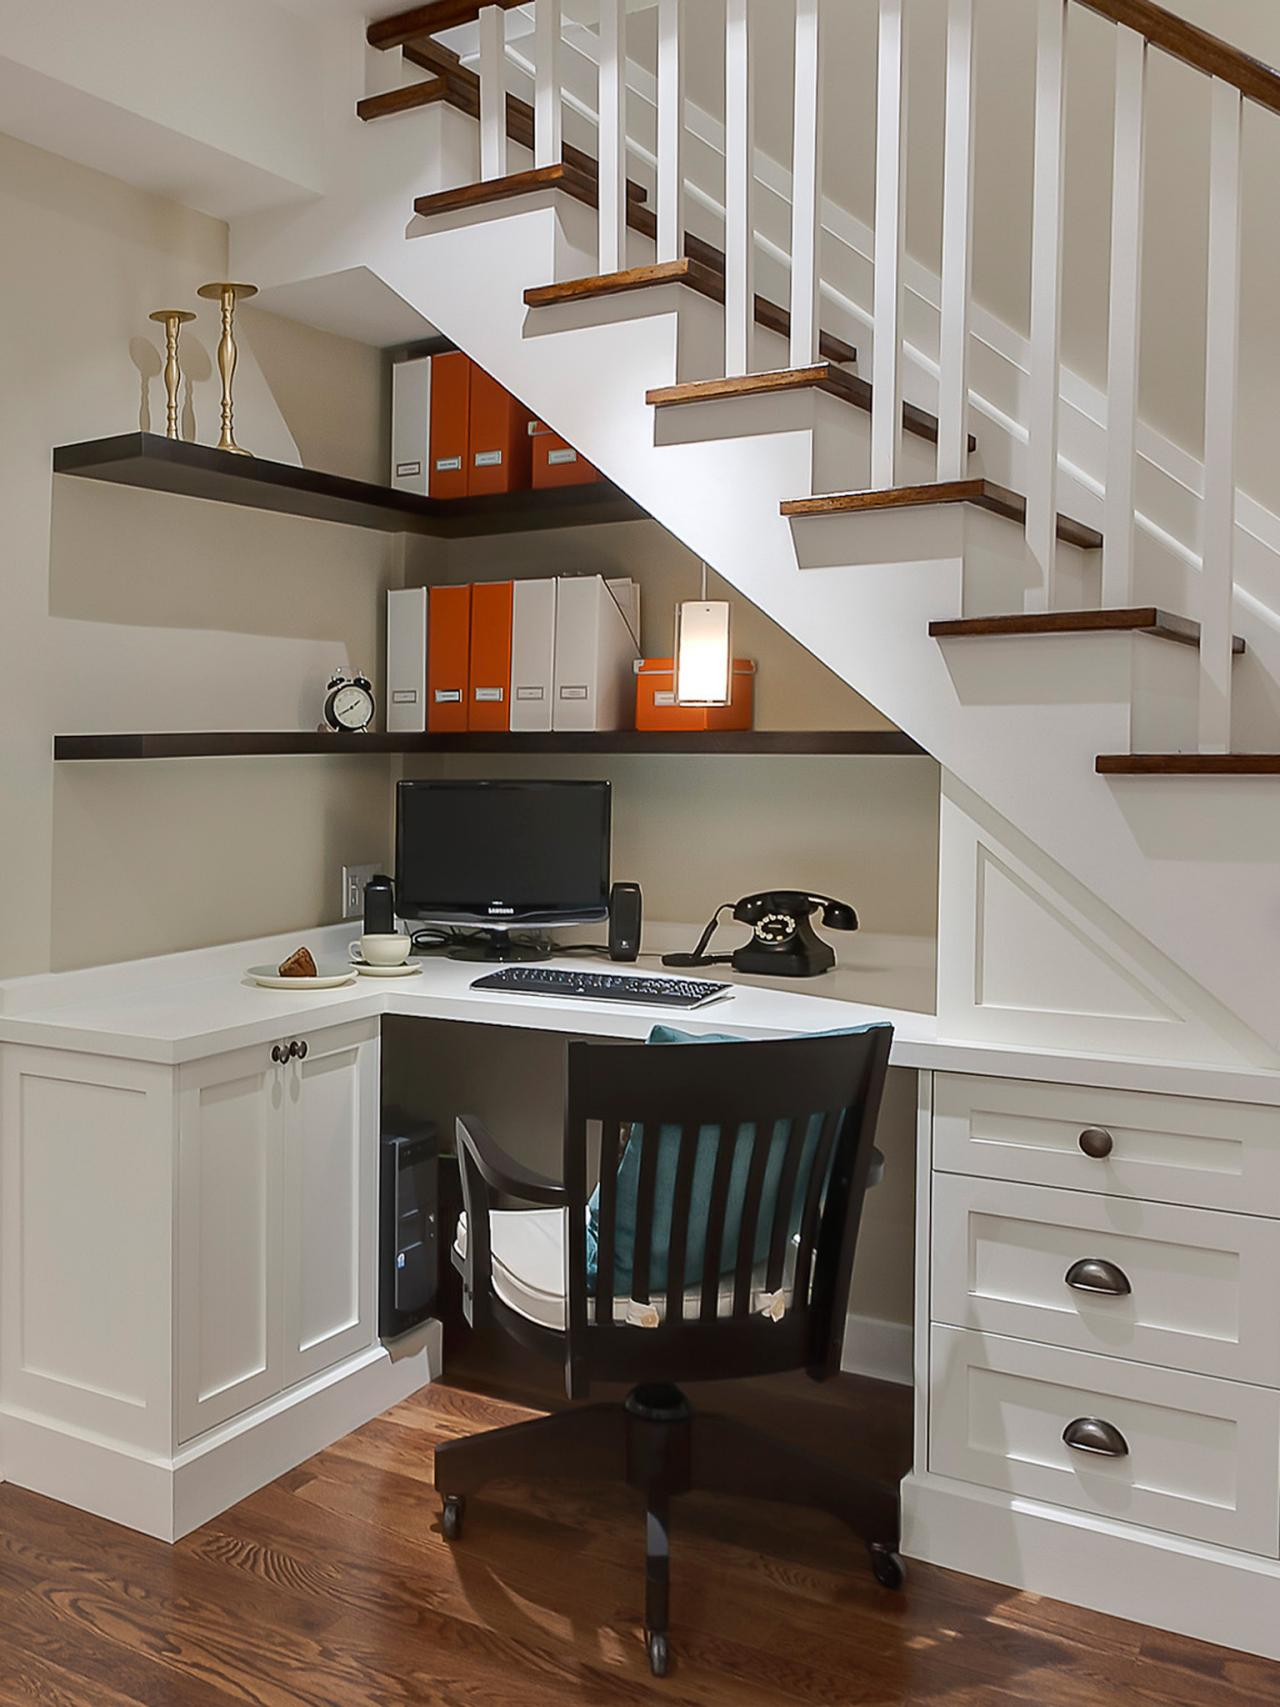 8 Steps To A Paperless Home Office Hgtv